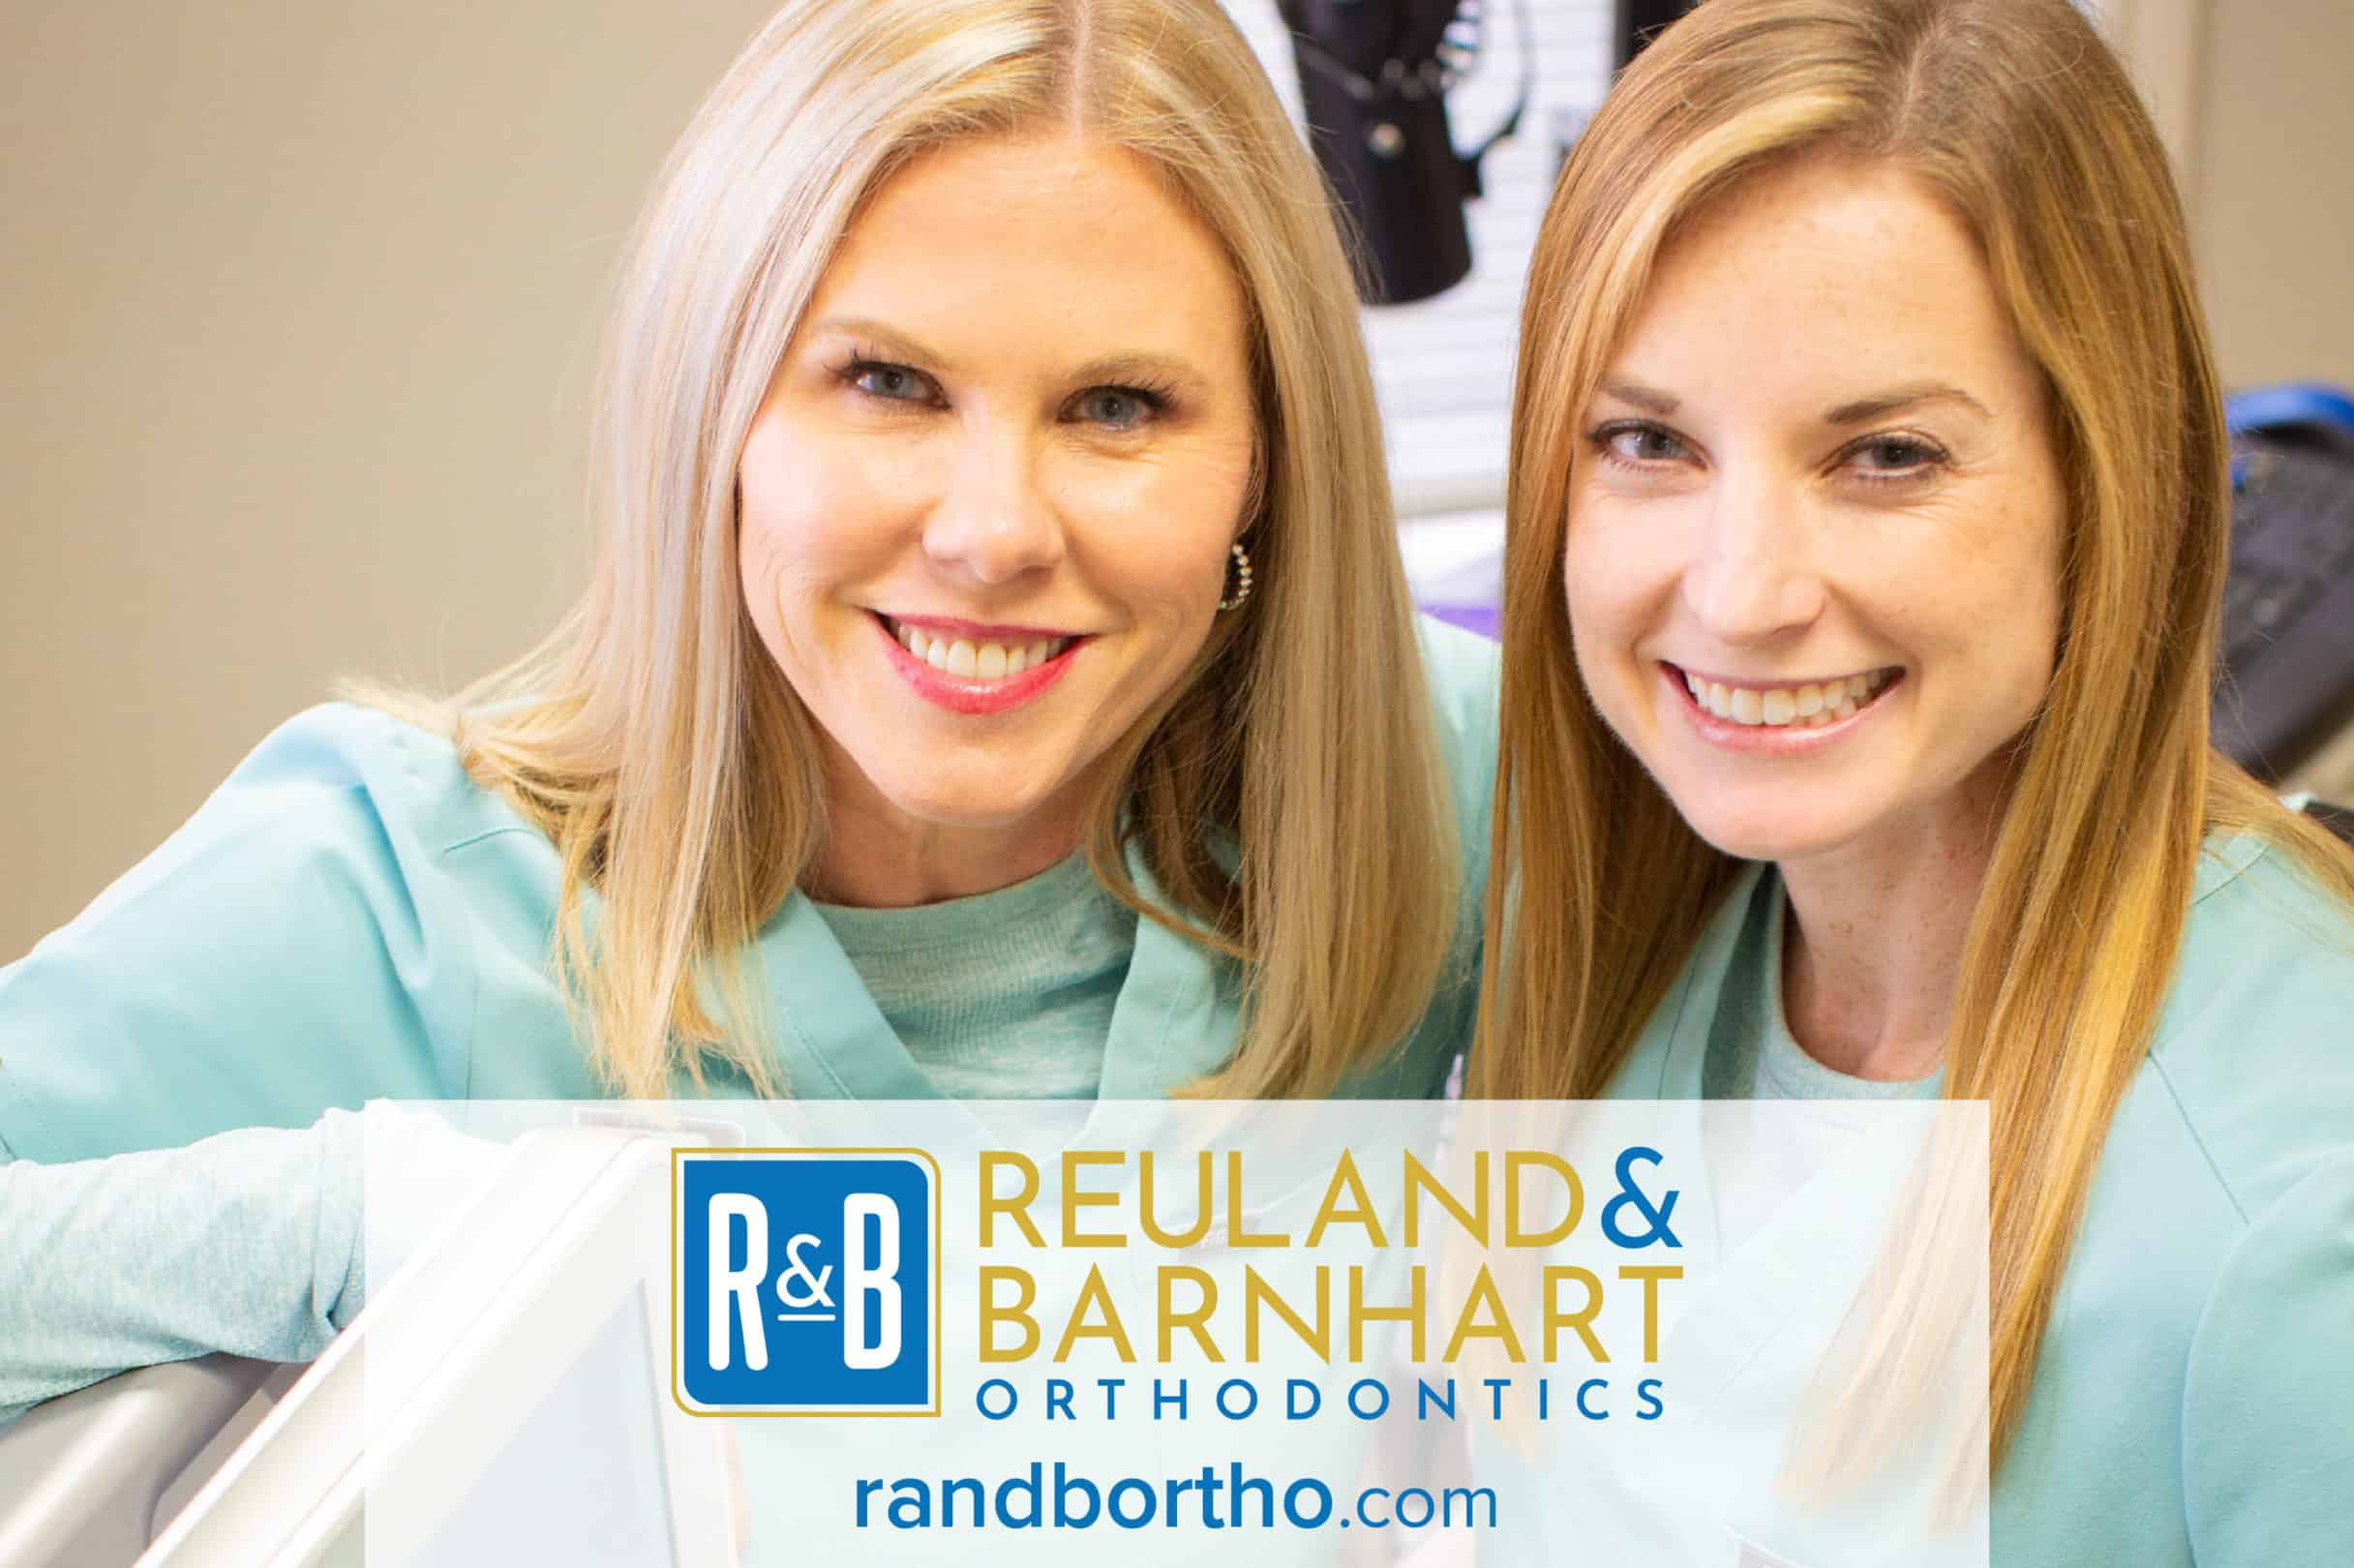 rb launch 01 1 scaled - We Are Officially Reuland & Barnhart Orthodontics